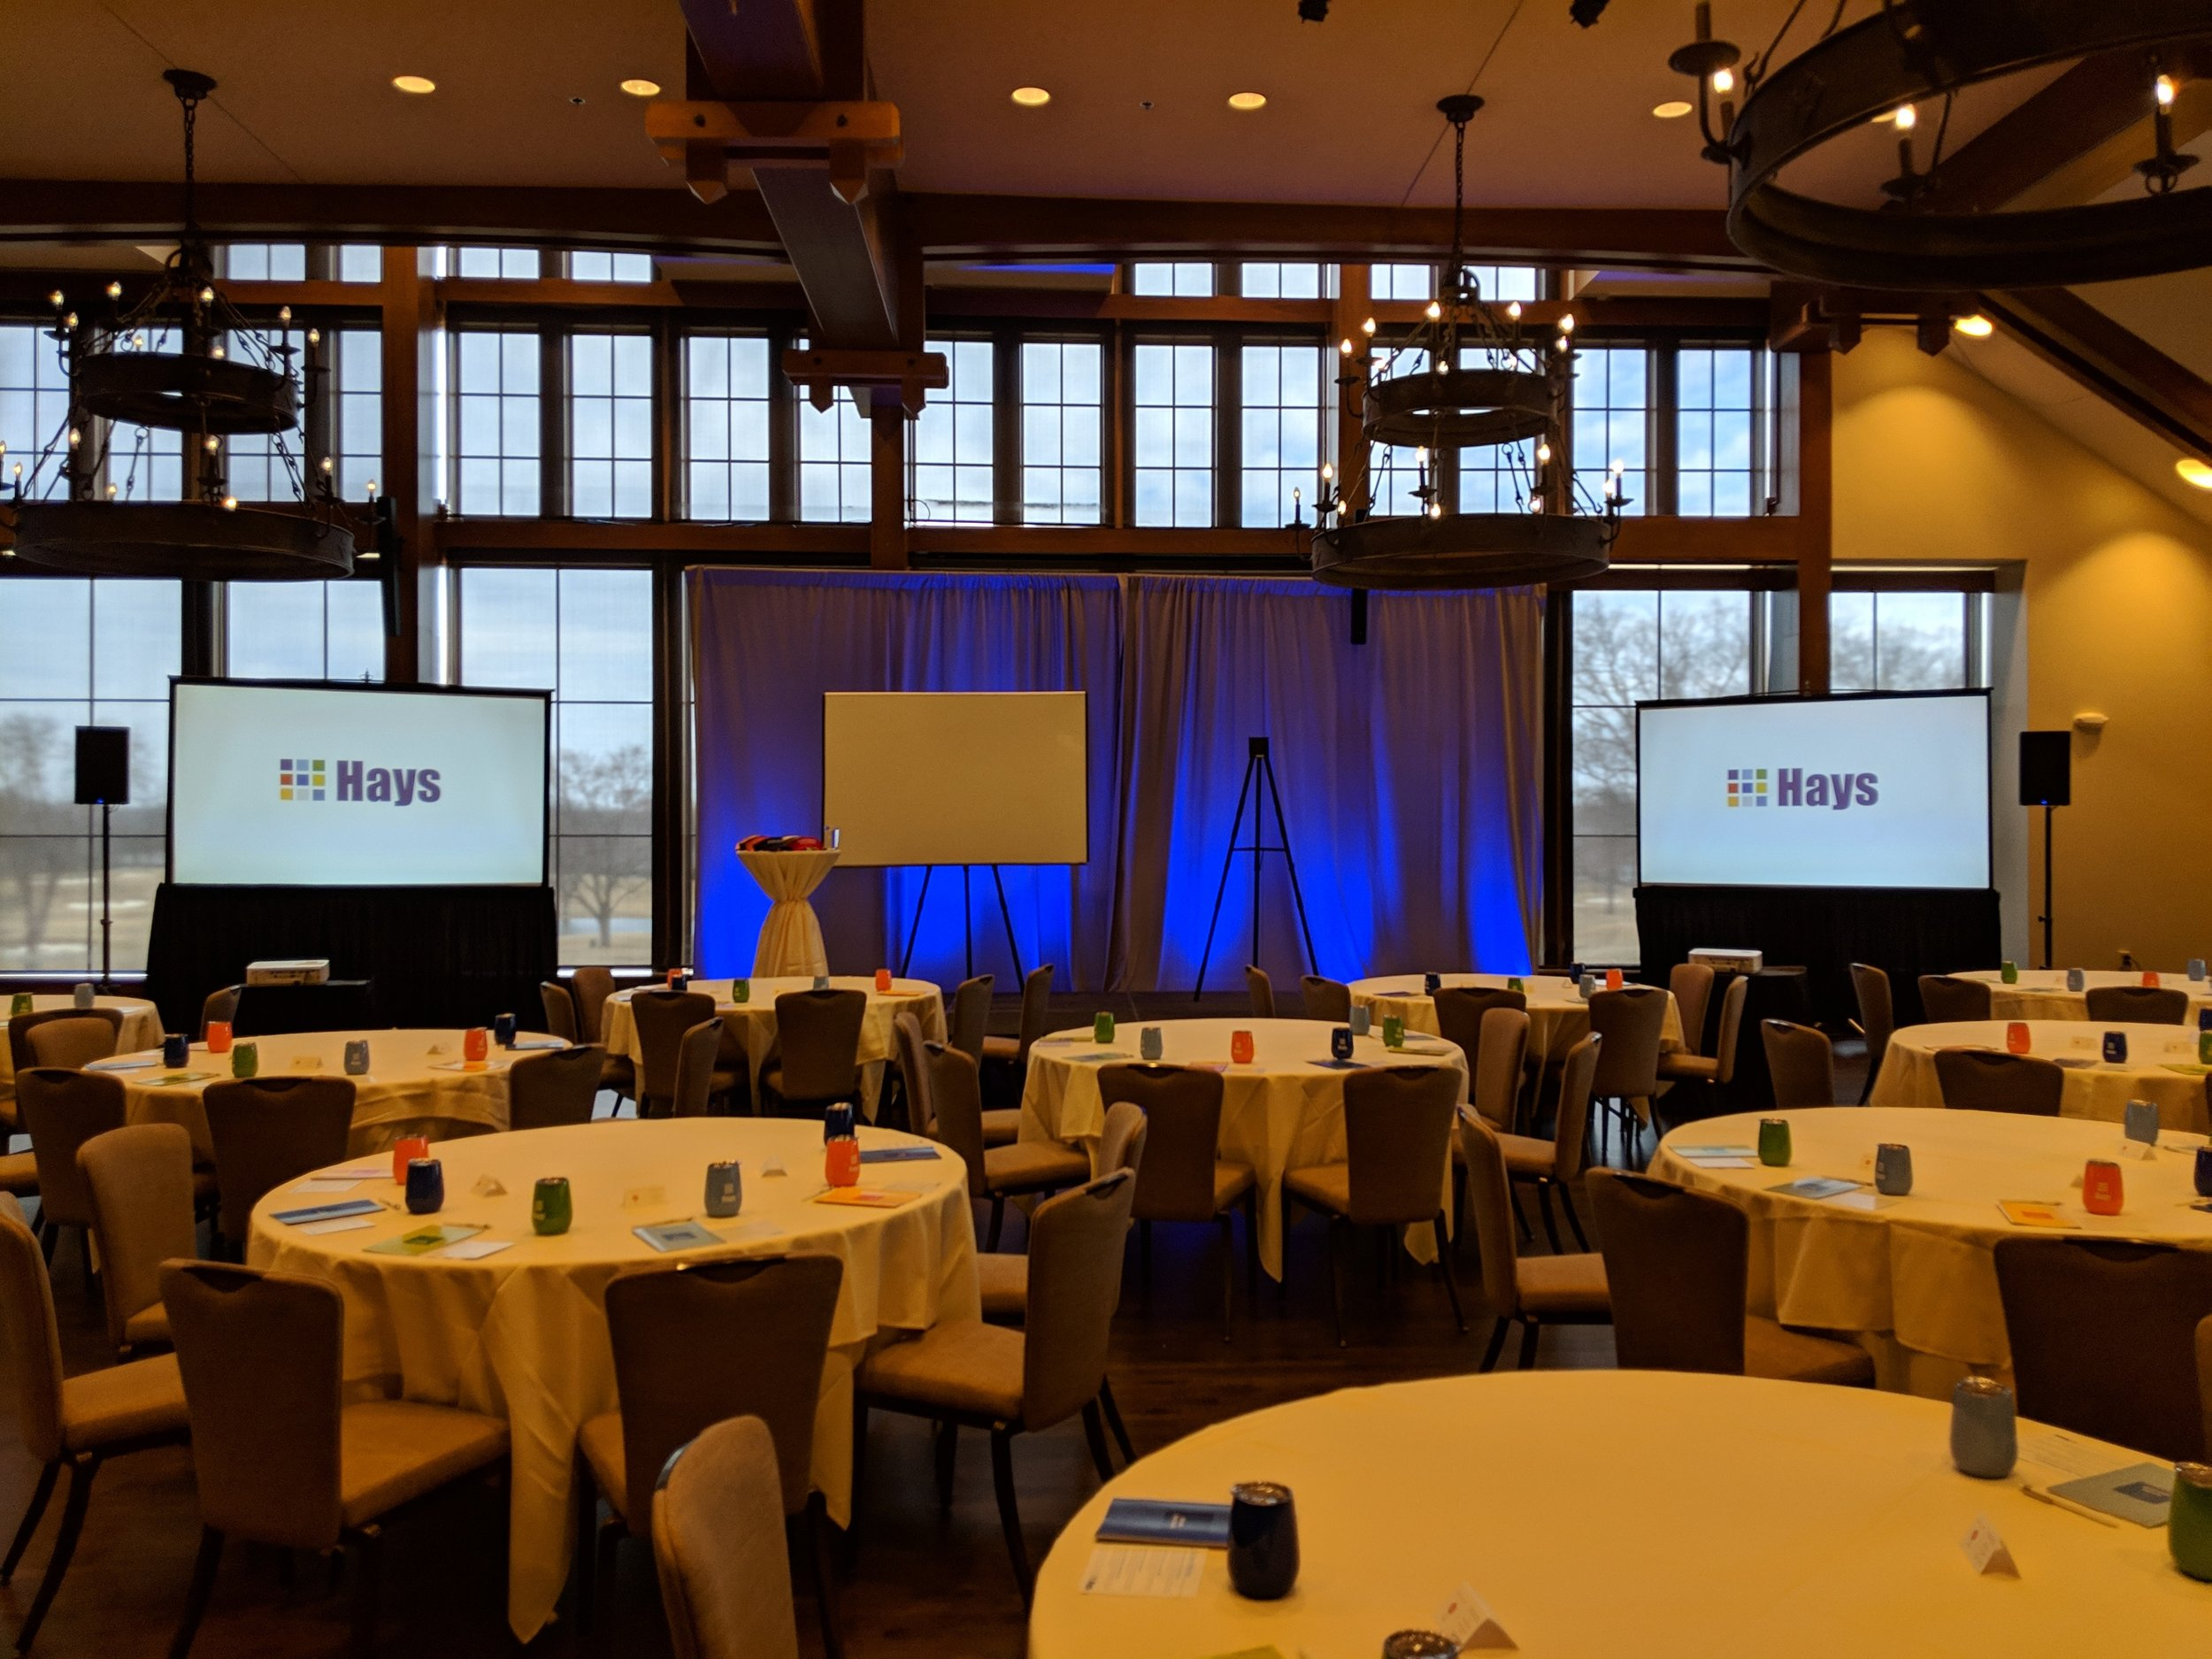 Picture of AV for You Rental Equipment at Interlachen Country Club in Minneapolis